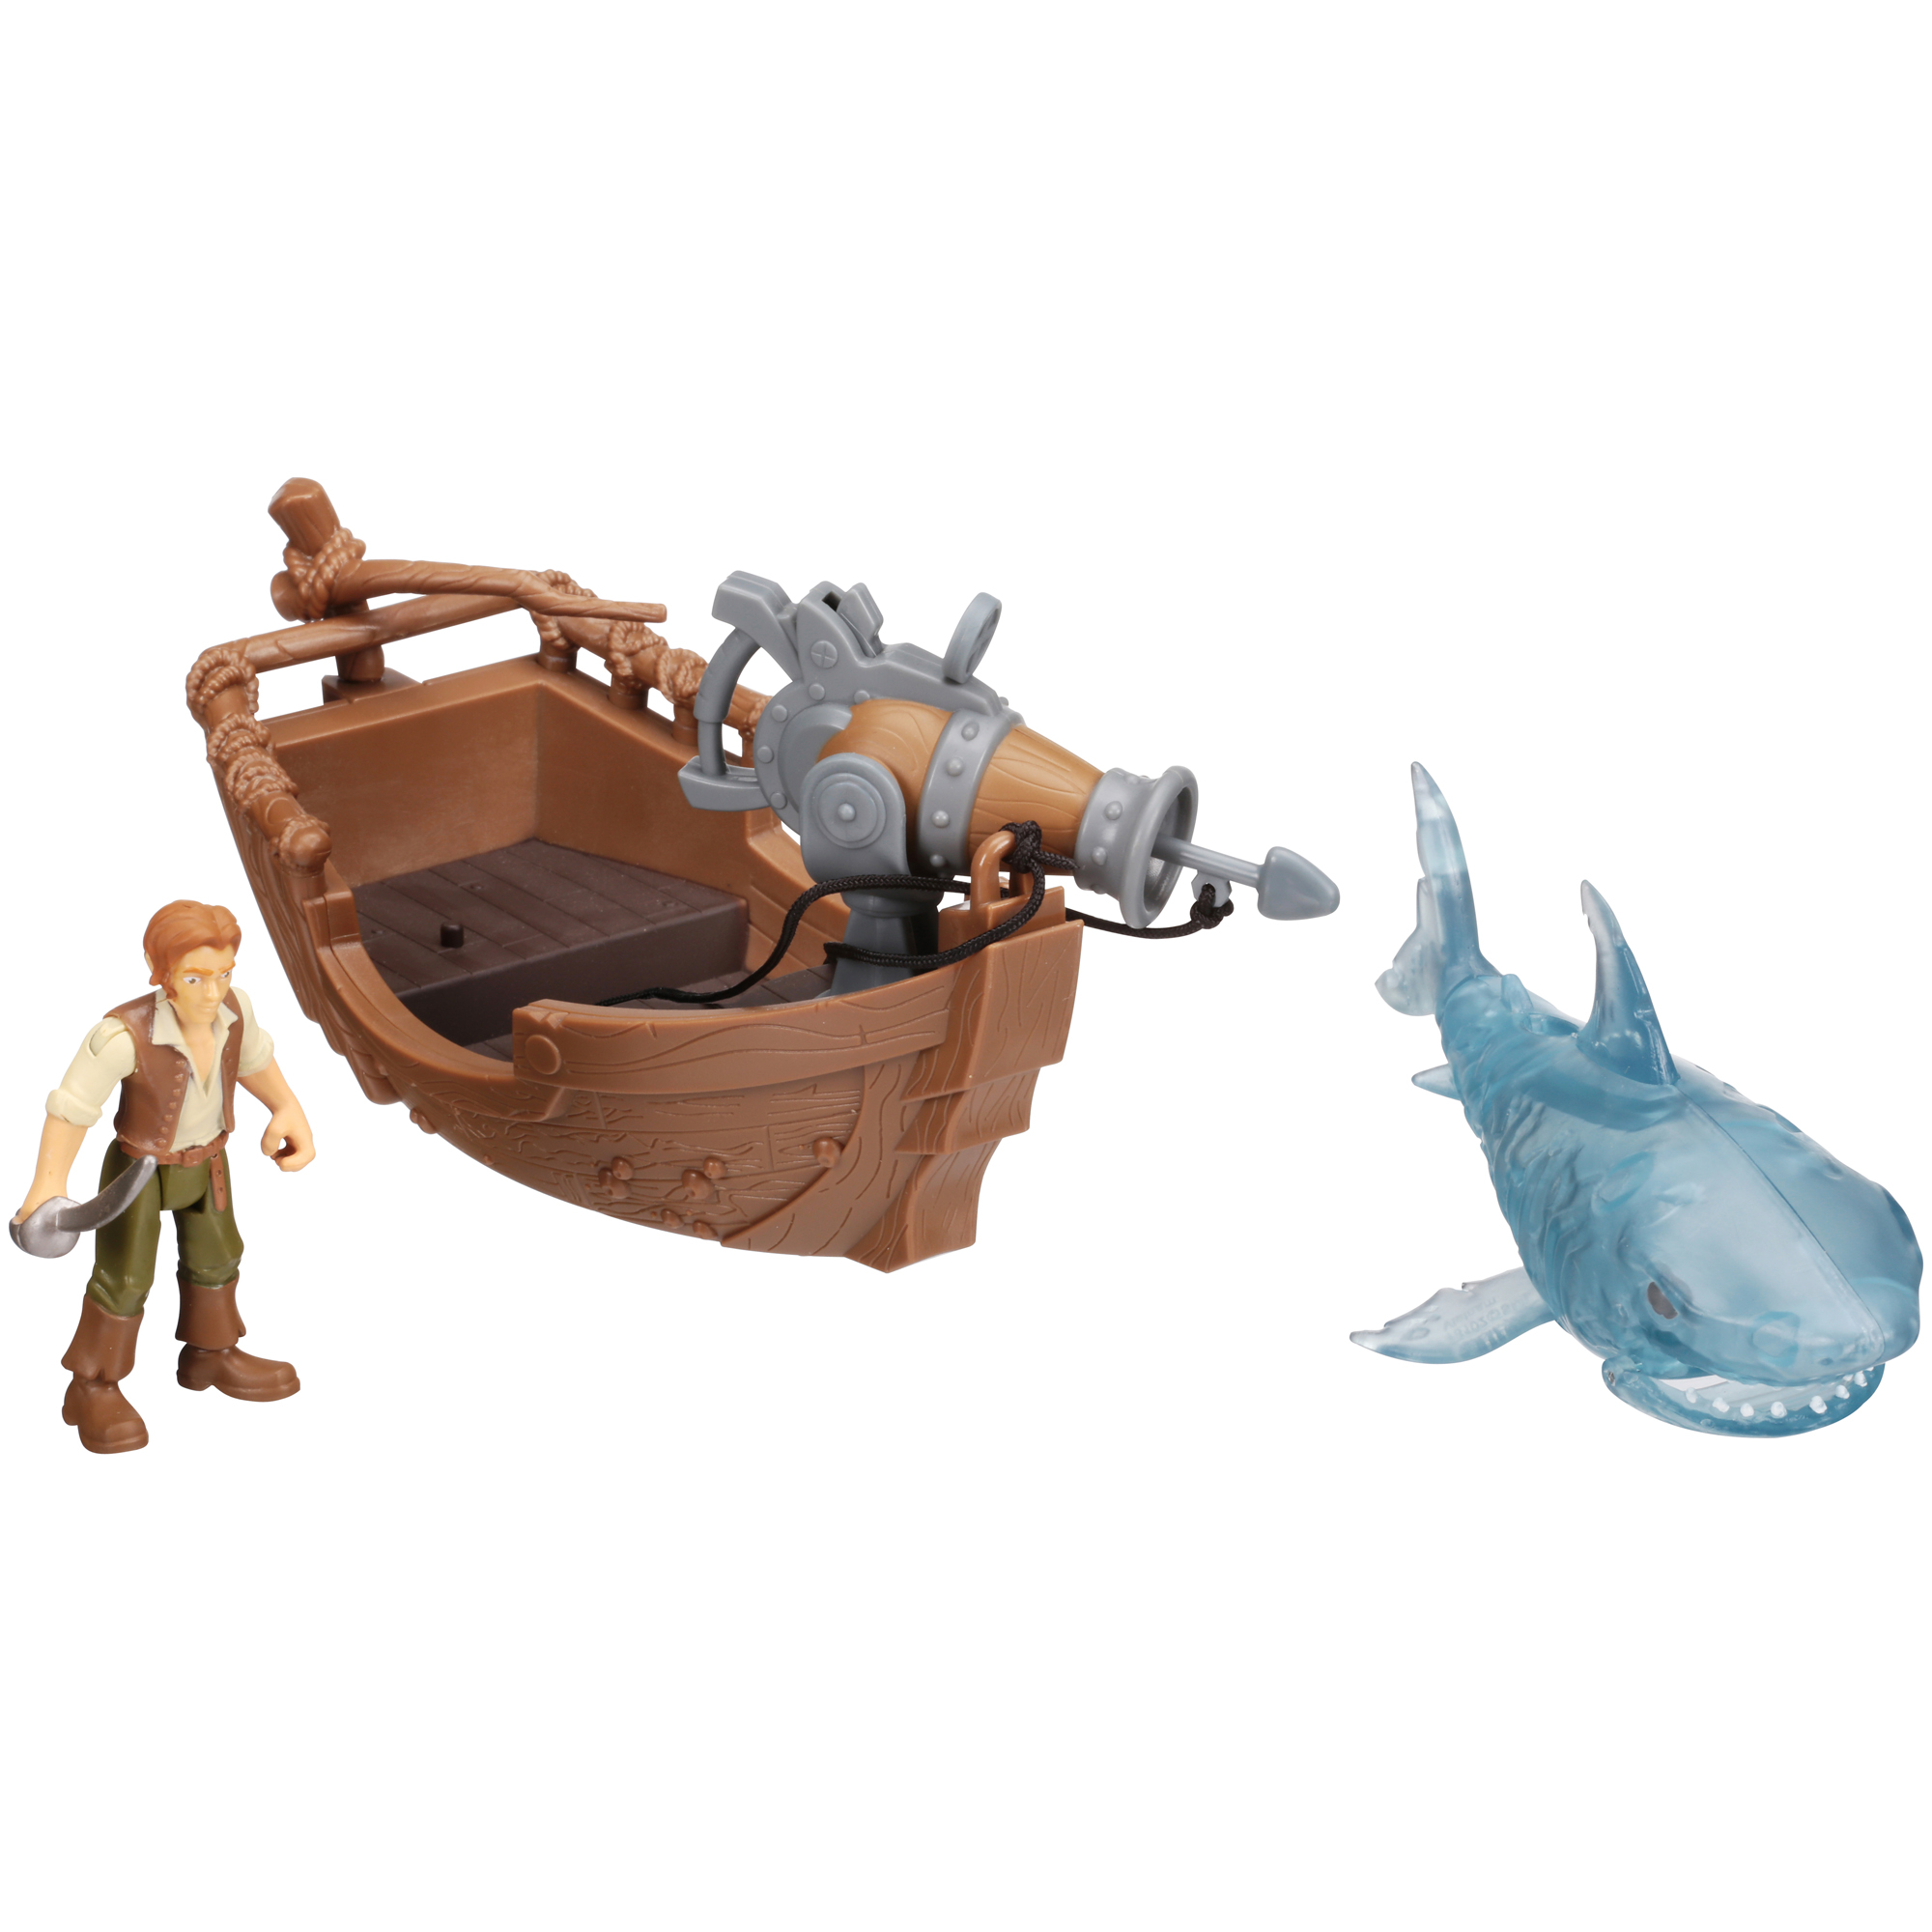 Disney Pirates of the Carribean Dead Men Tell No Tales Ghost Shark Attack Playset 3 pc Carded Pack